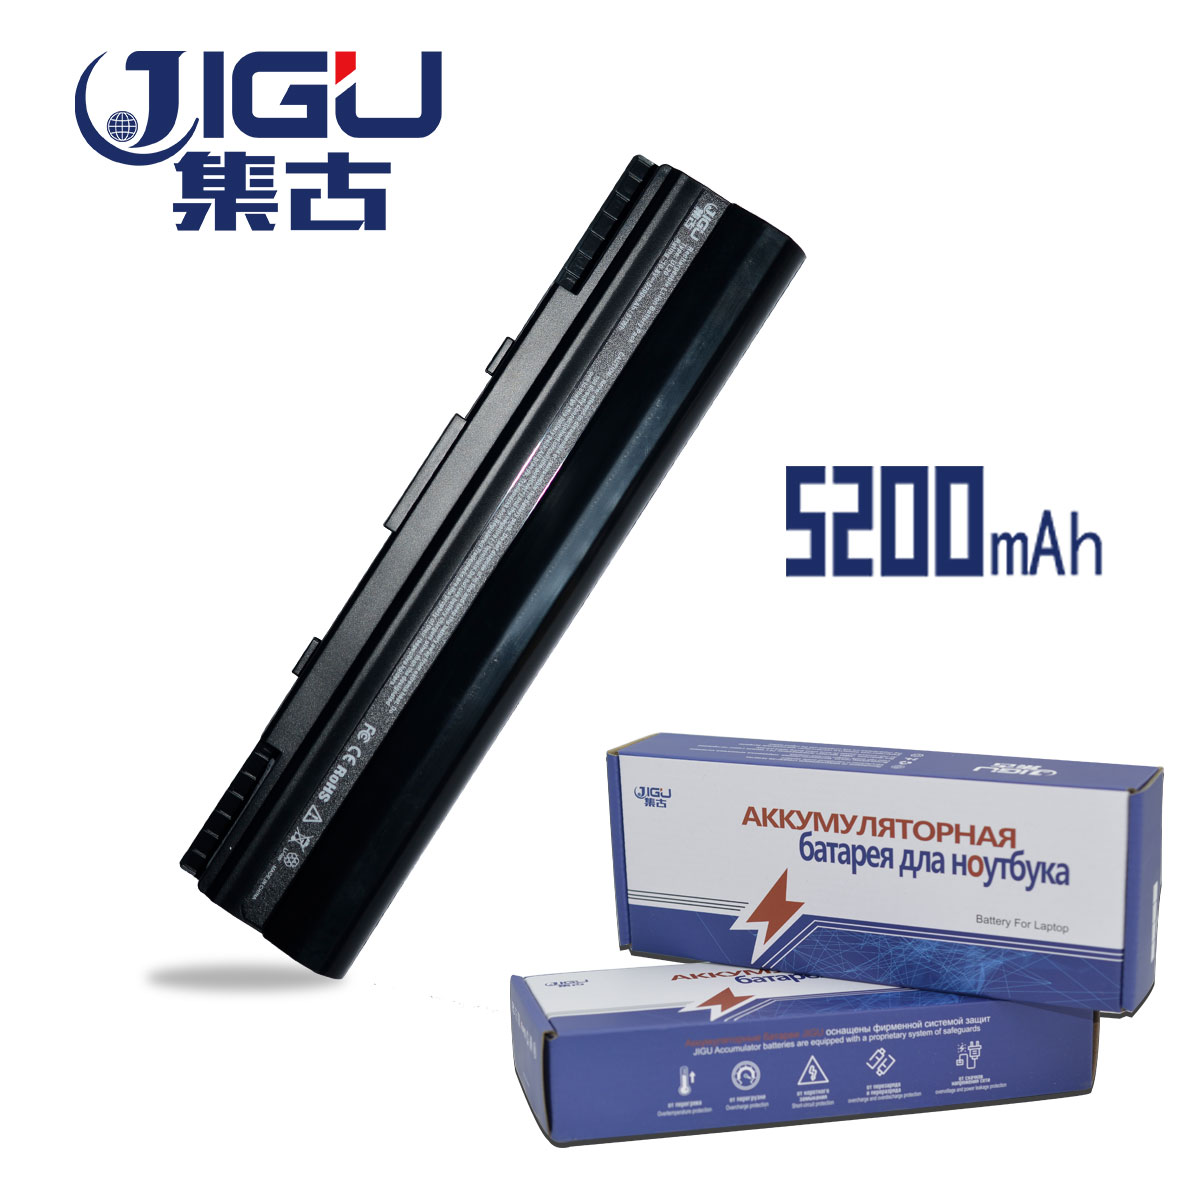 JIGU 6Cells Laptop Battery For Asus Eee PC 1201 1201HA 1201N 1201T UL20 UL20A UL20G UL20VT 90-NX62B2000Y 90-NX62B2000Y A32-UL20